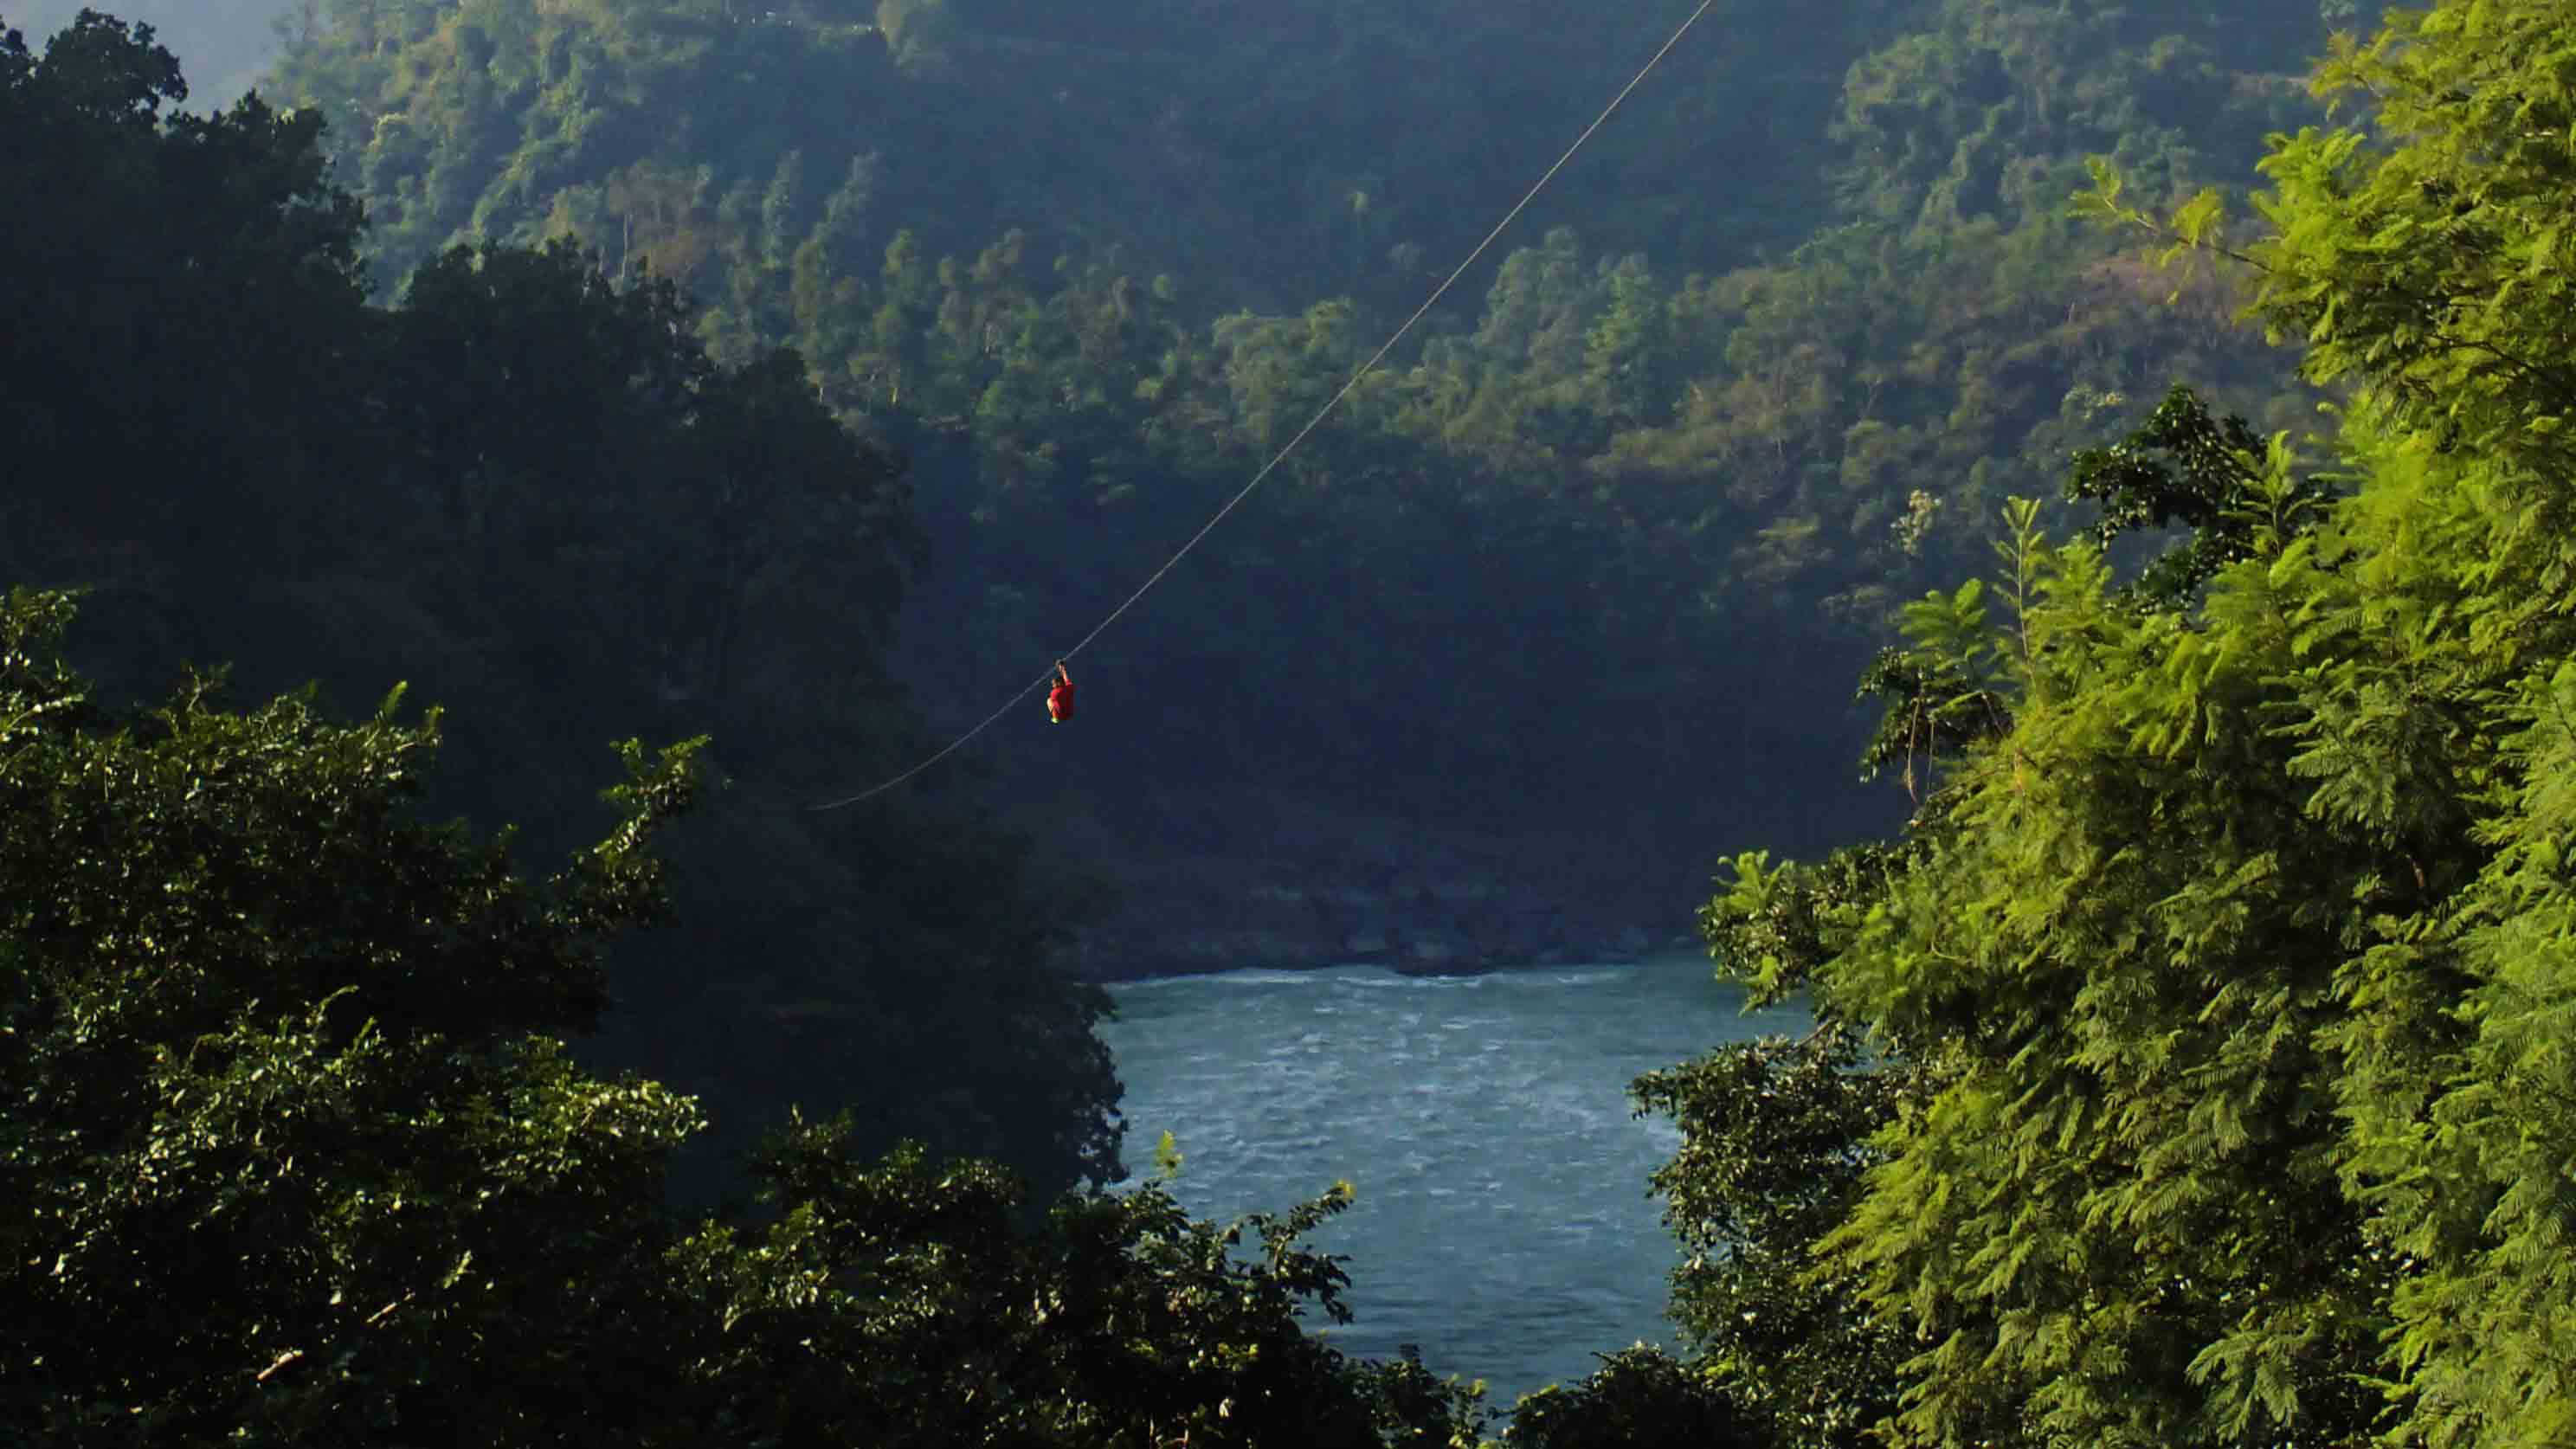 Rishikesh current offer advert